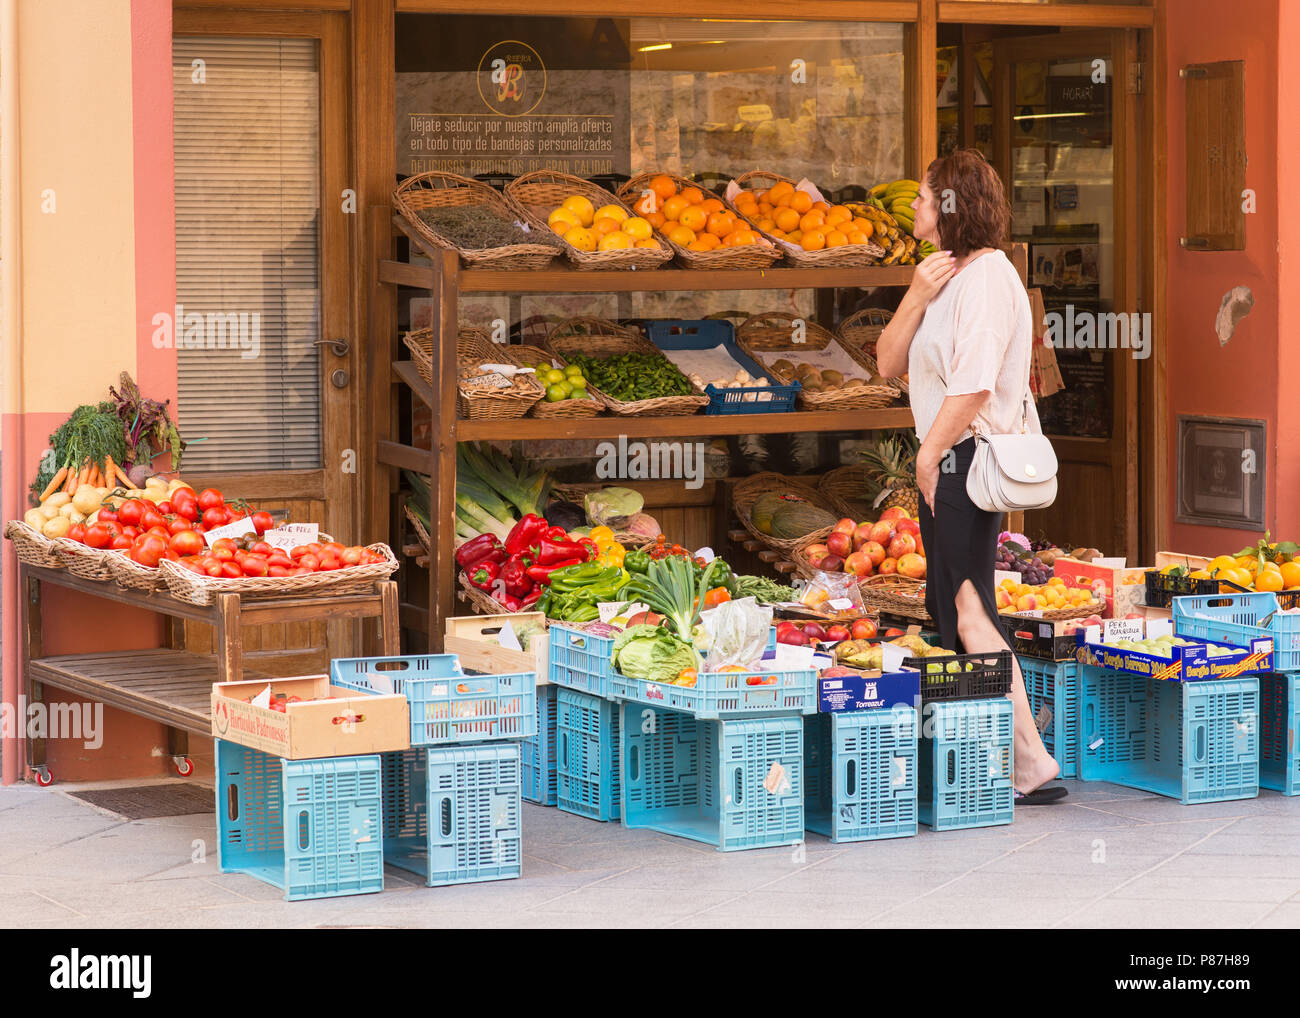 A woman chooses fruit from a display outside a fruit shop - Stock Image